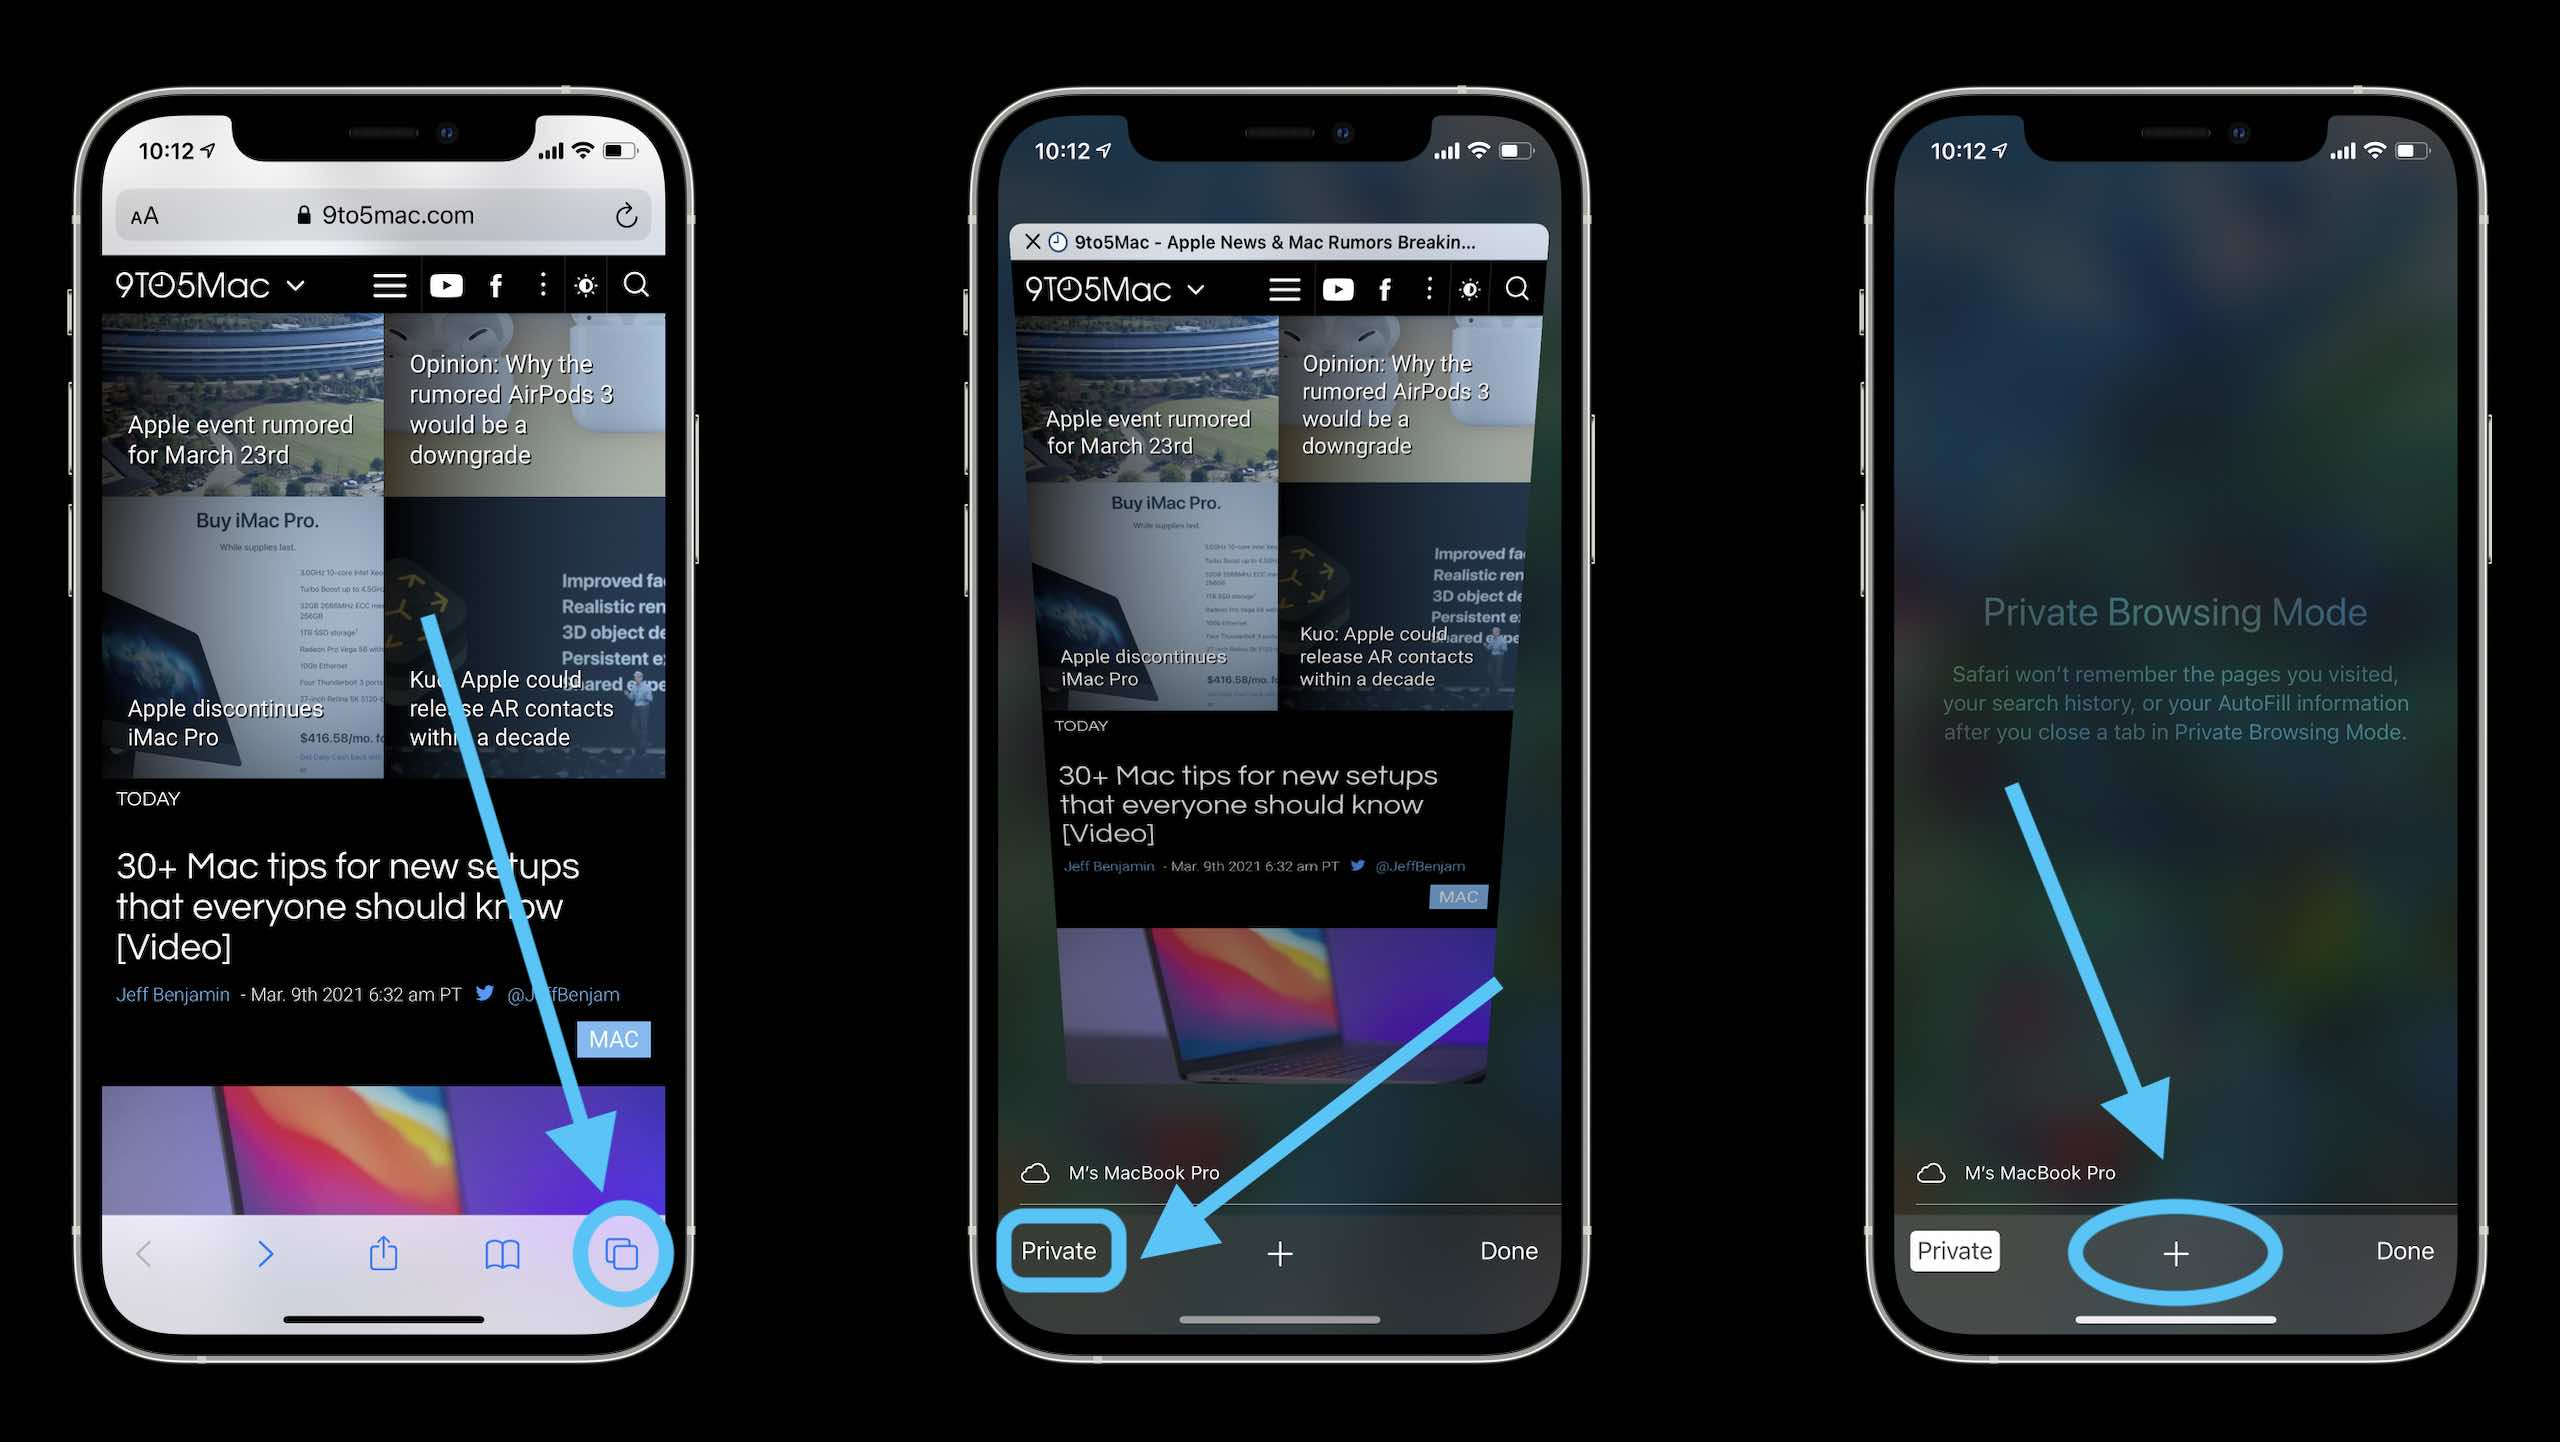 How to use Private Browsing on iPhone and iPad - 9to5Mac